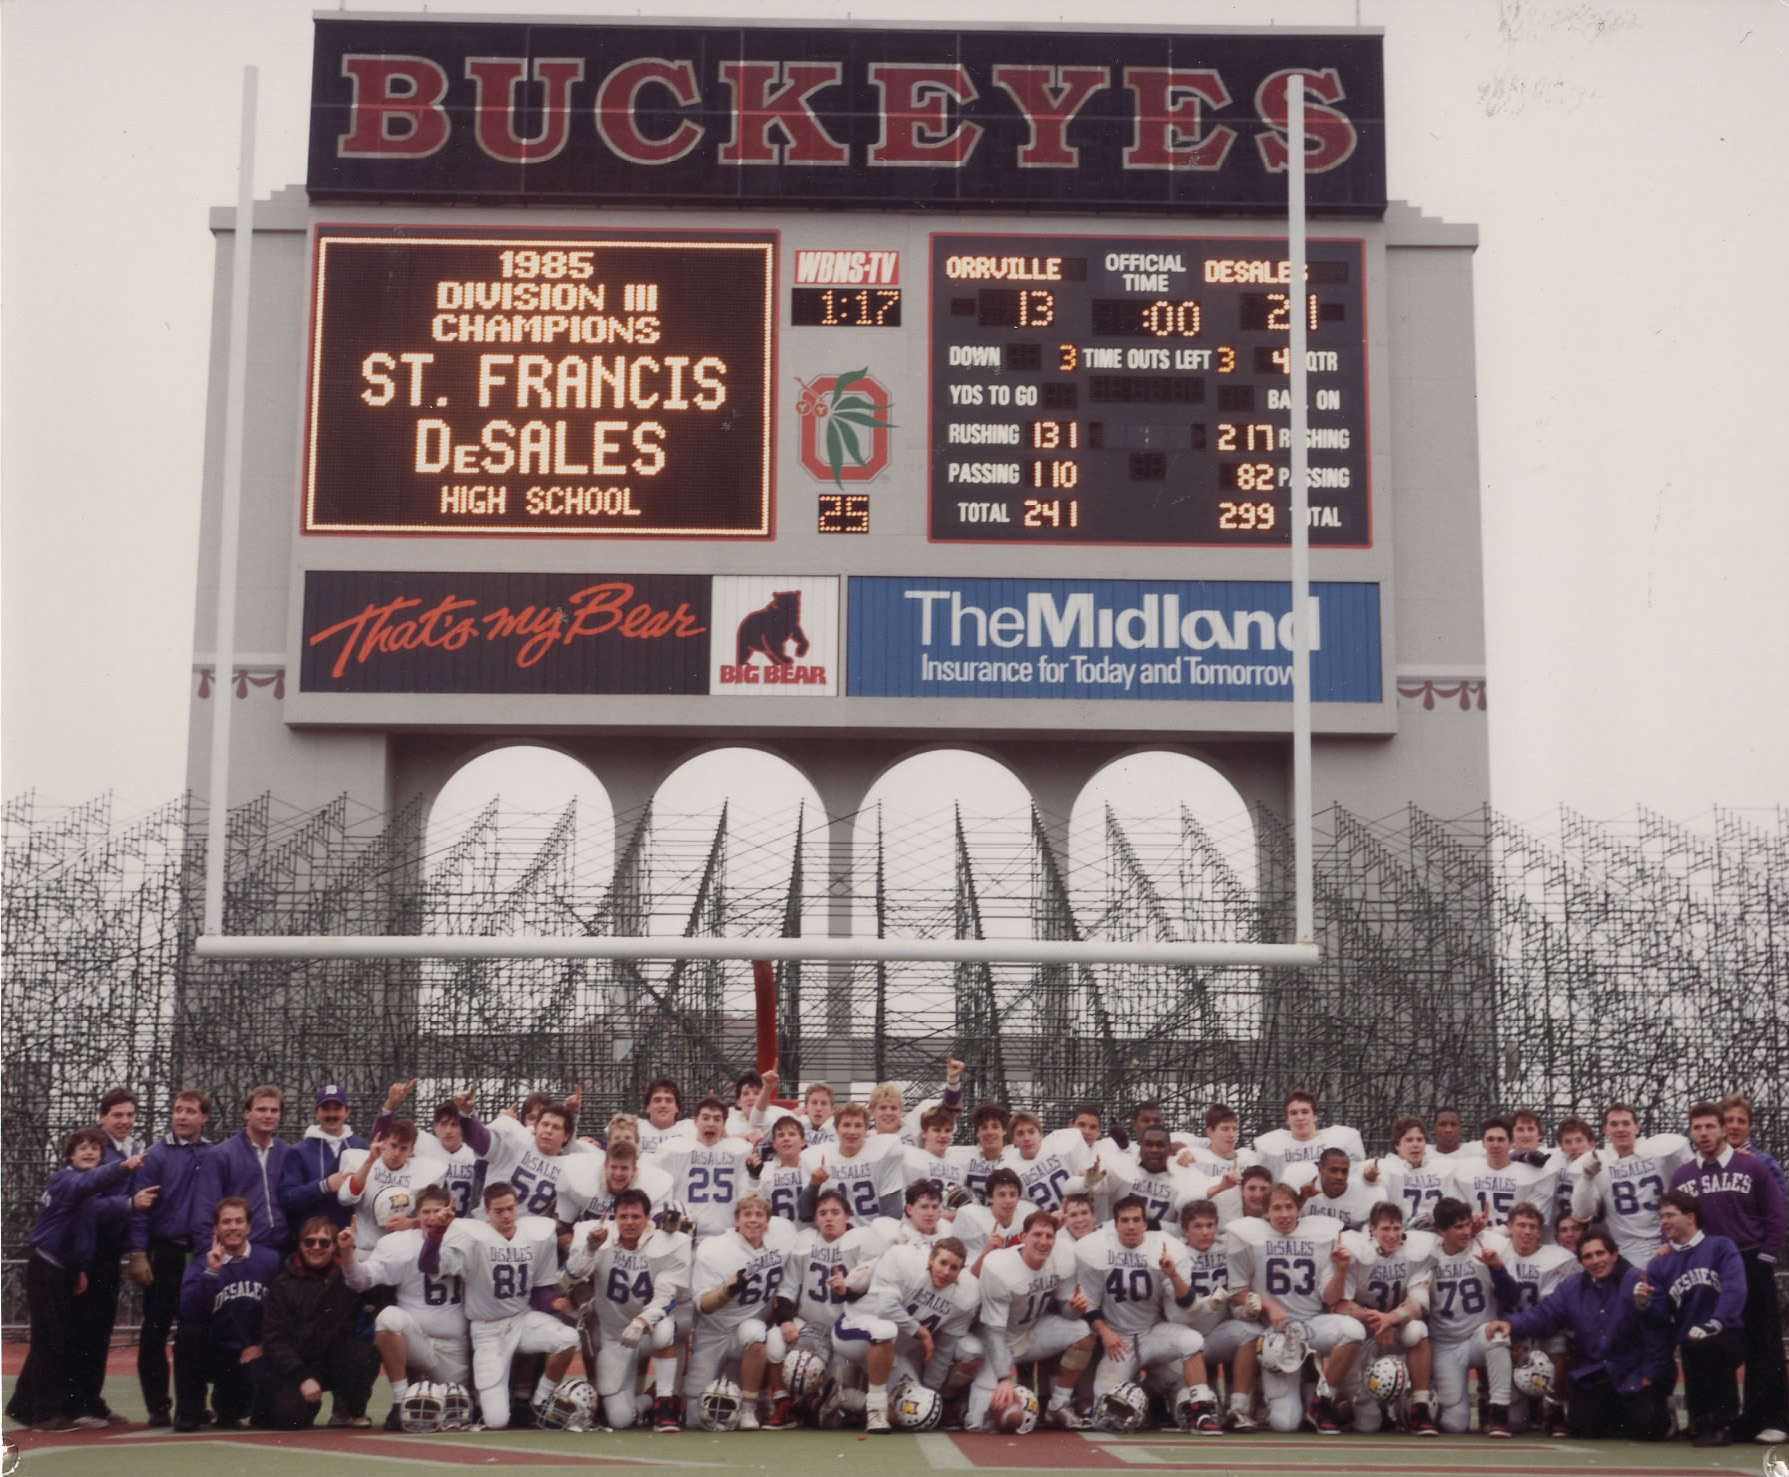 1985 Division-III State Champions